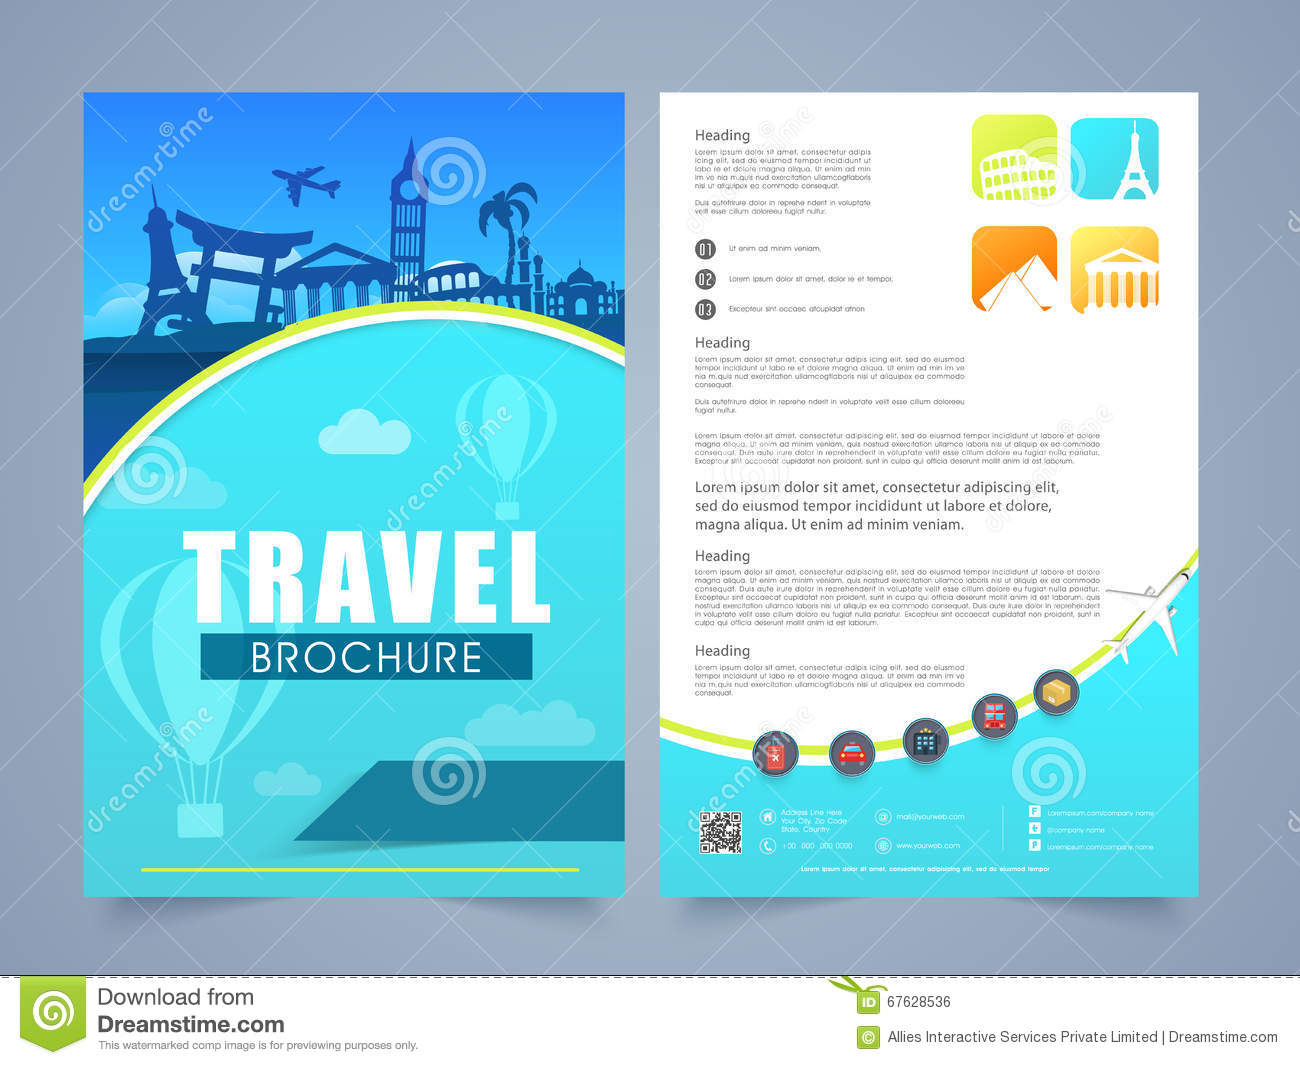 free templates for flyers and brochures - travel brochure template or flyer design stock